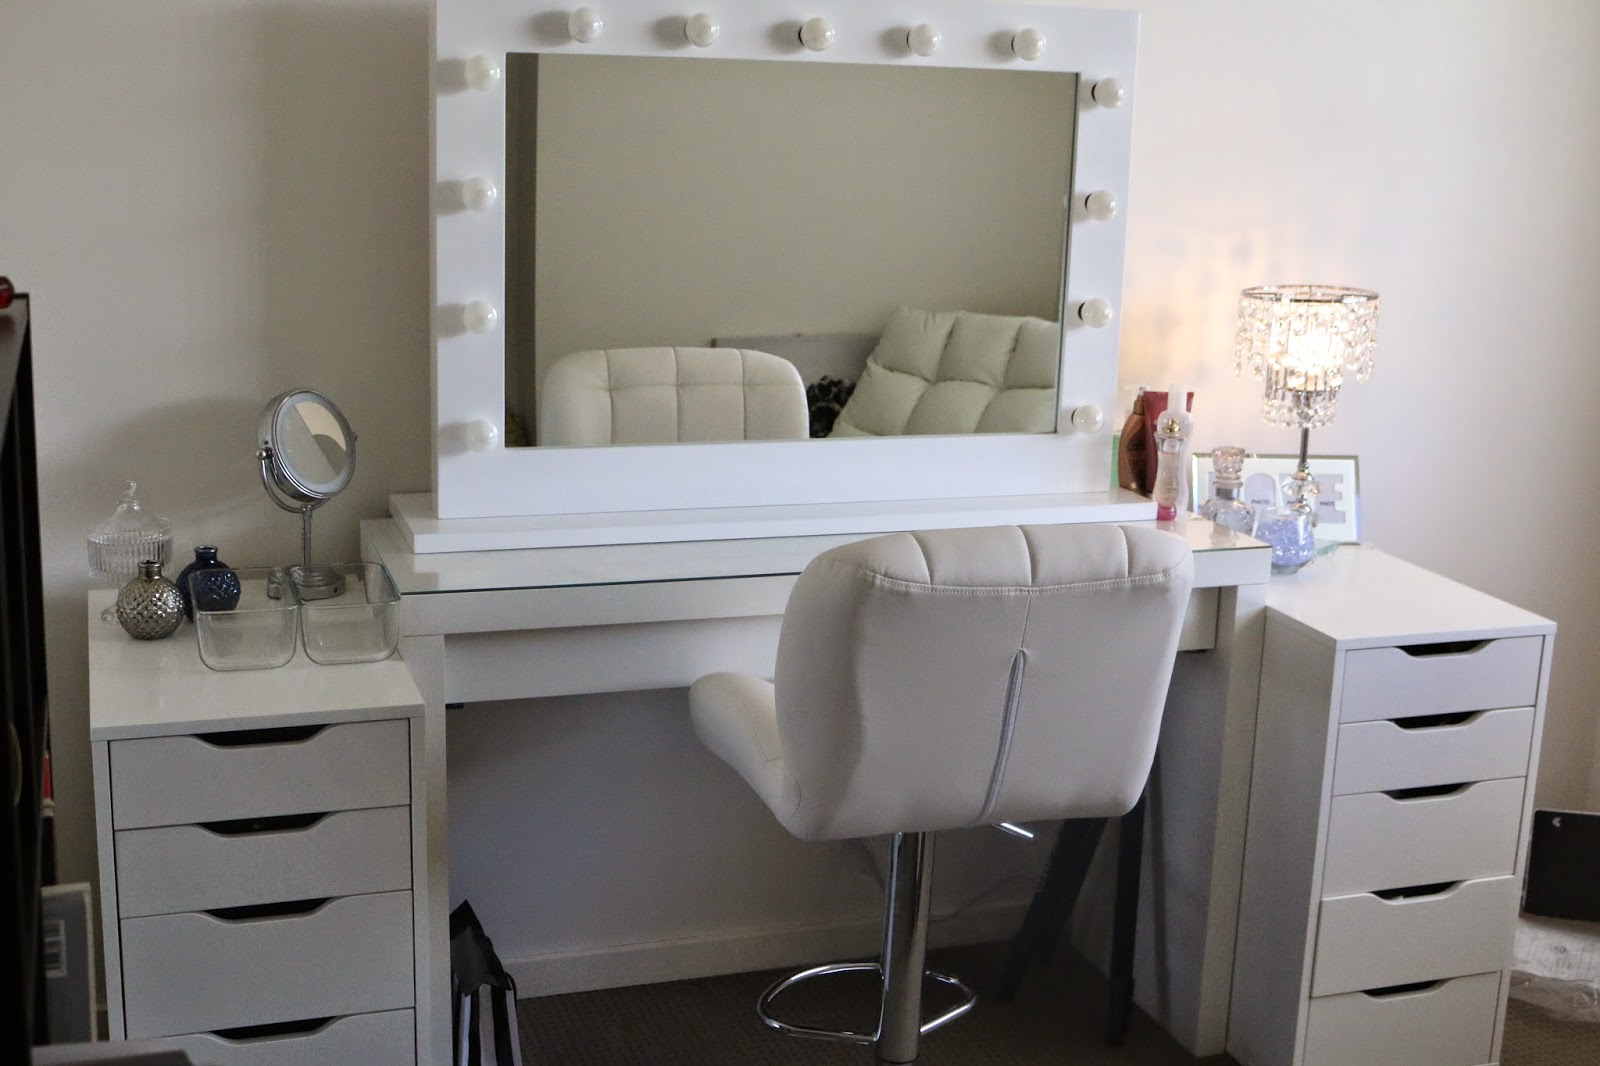 Ikea Vanity Table With Lights – Nazarm.com